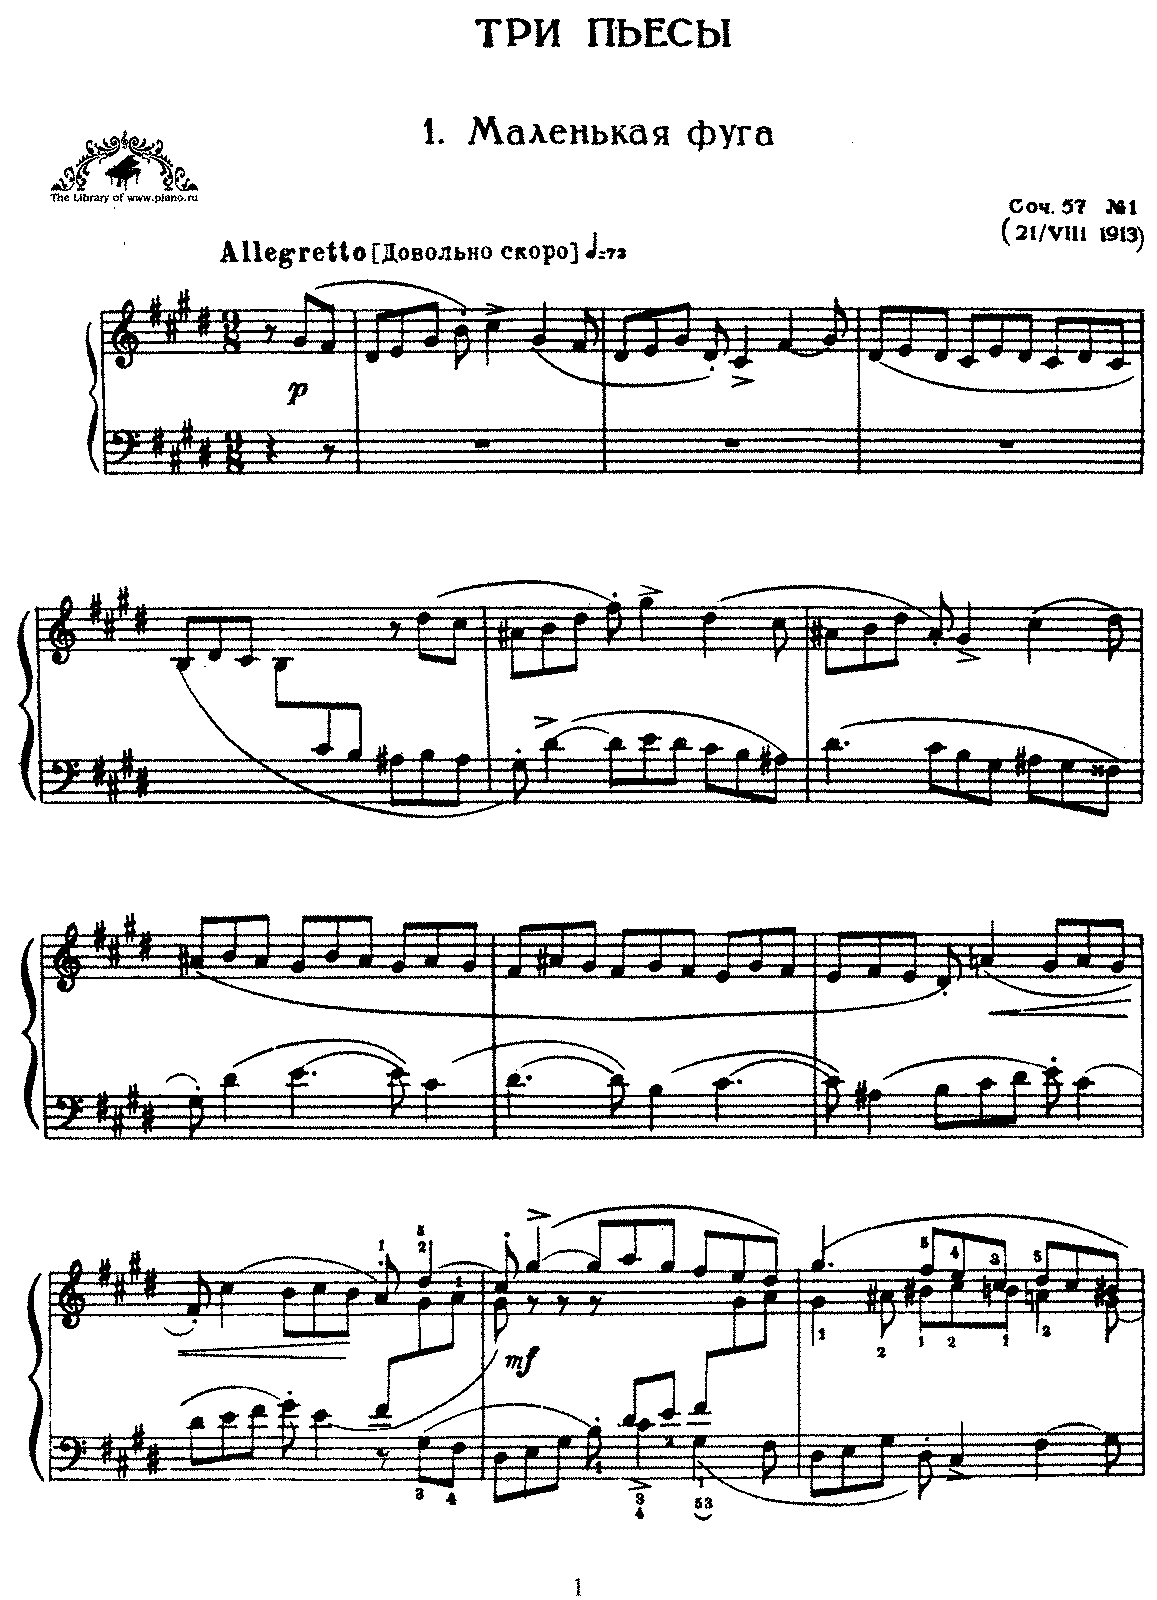 Liapunov - Op.57 - 2 Pieces.pdf